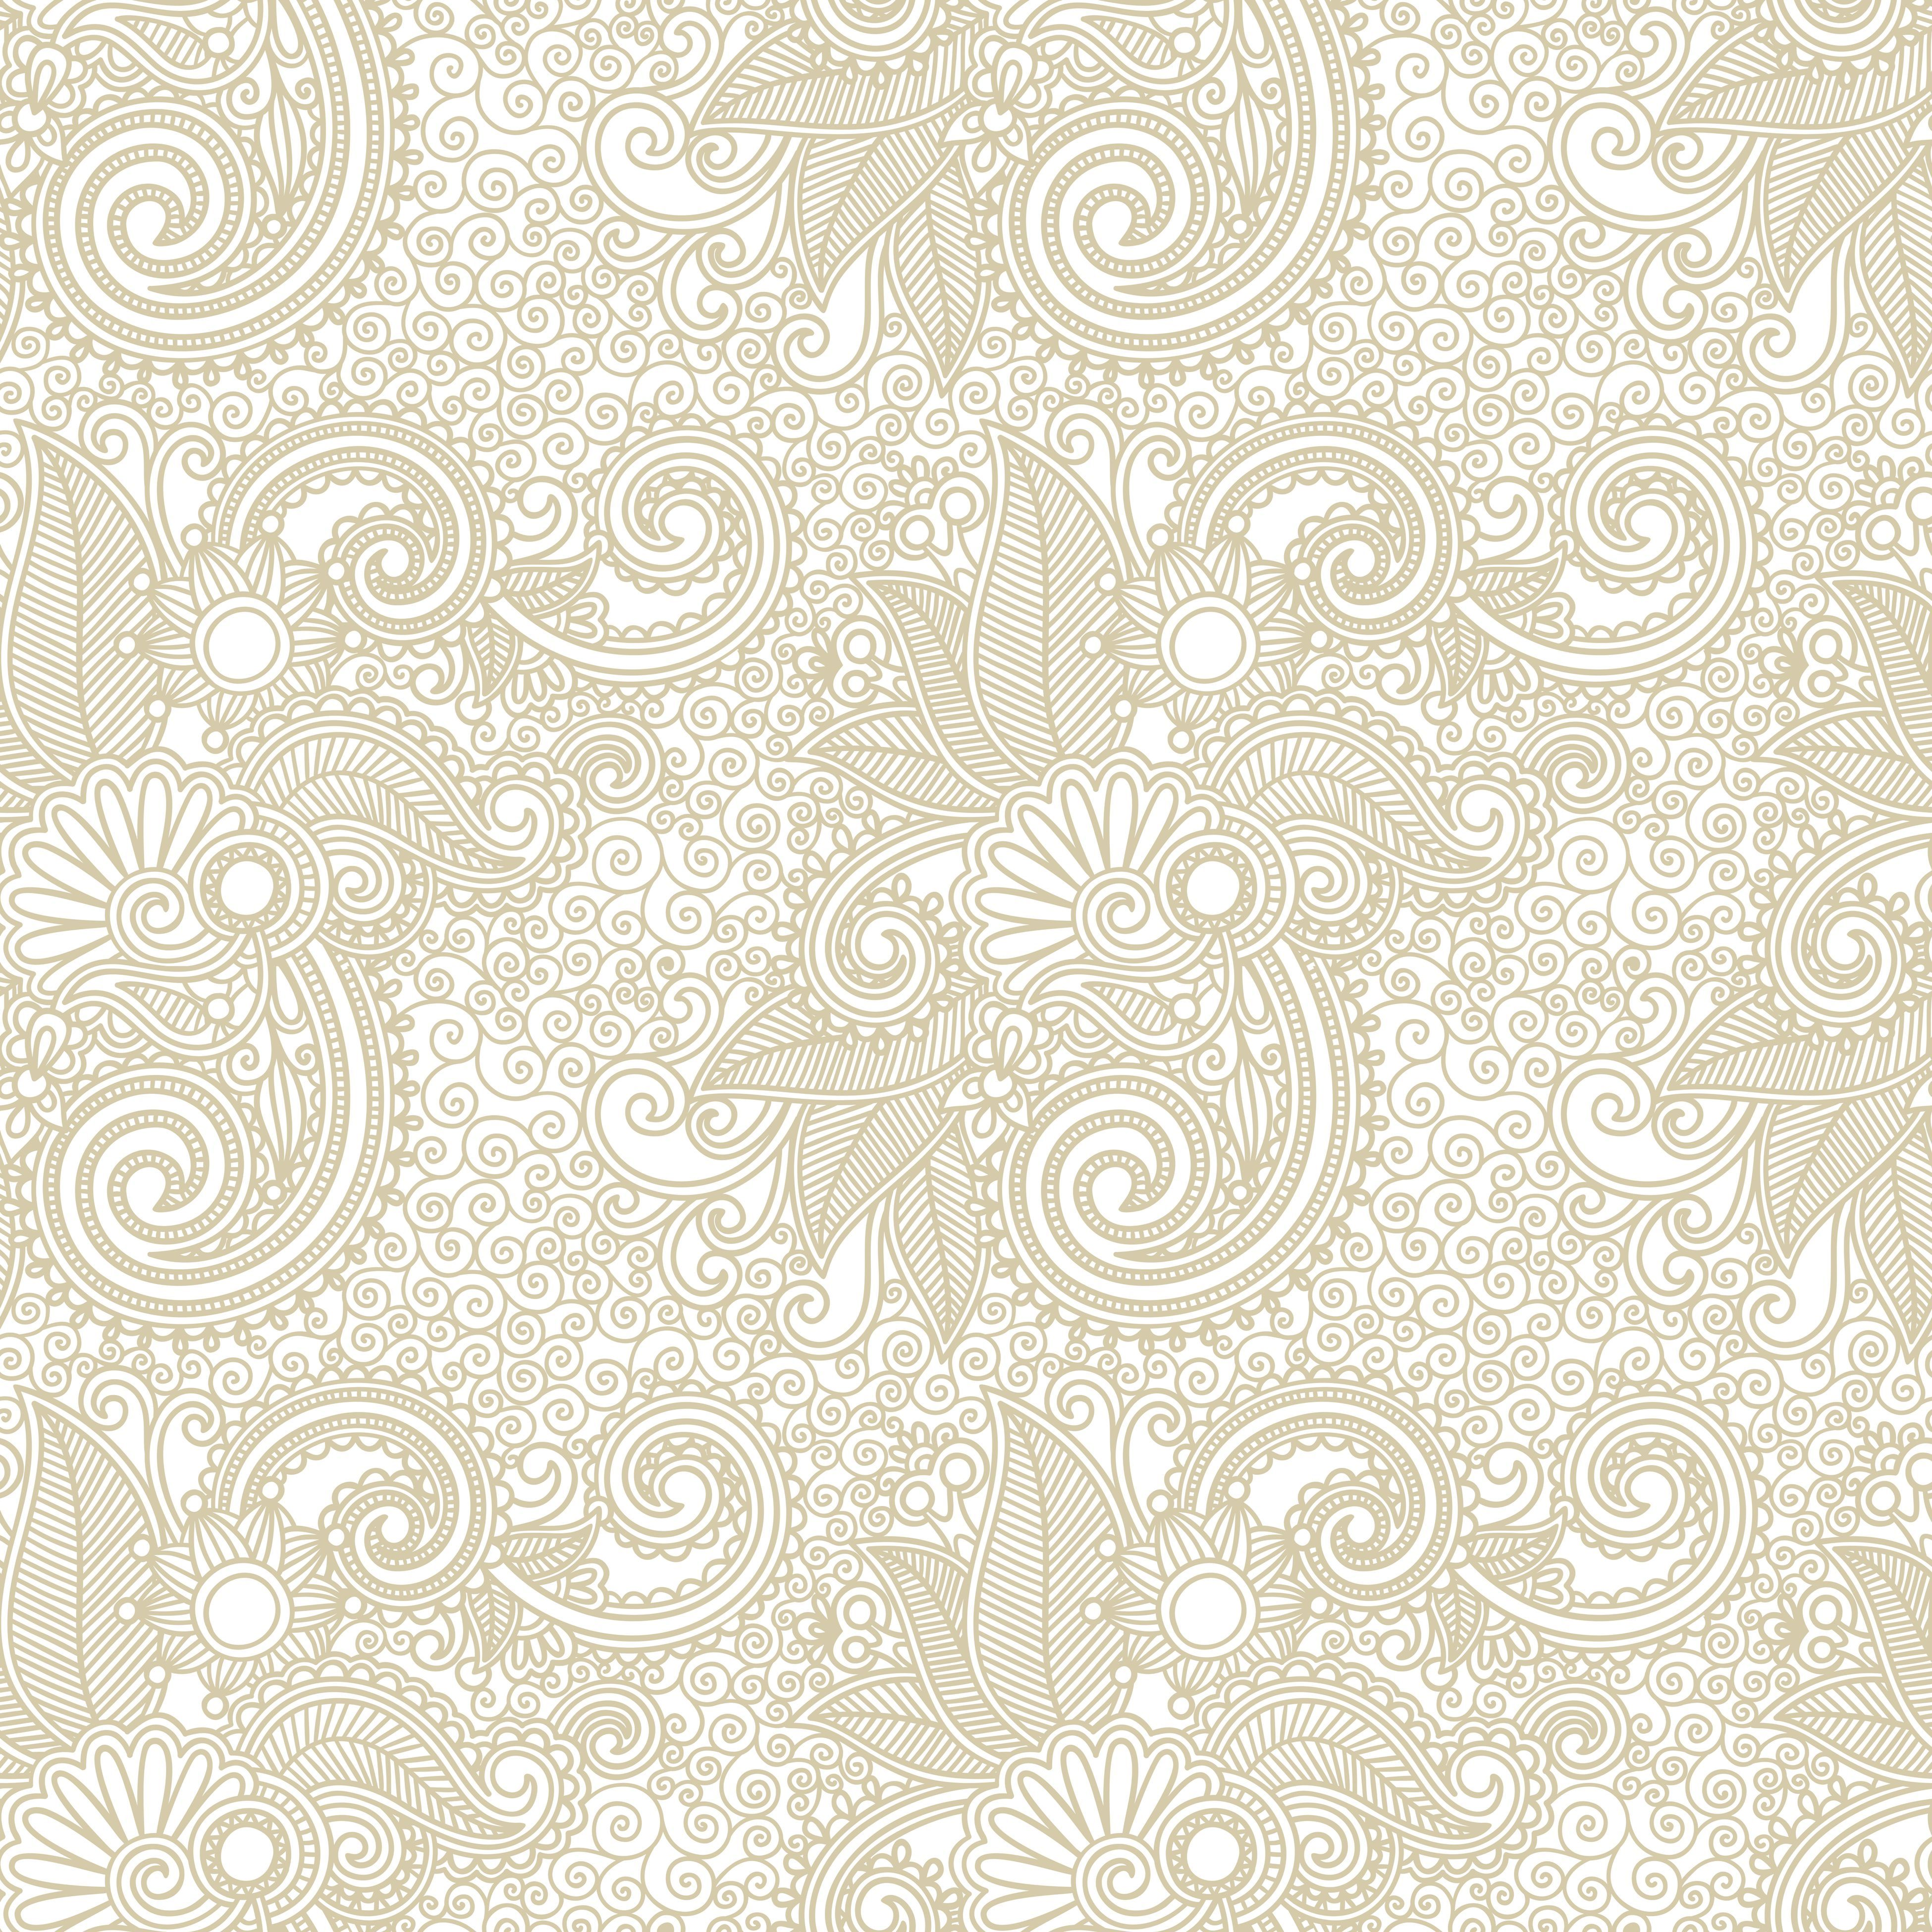 Lace Swirls Wallpaper - WallpaperSafari